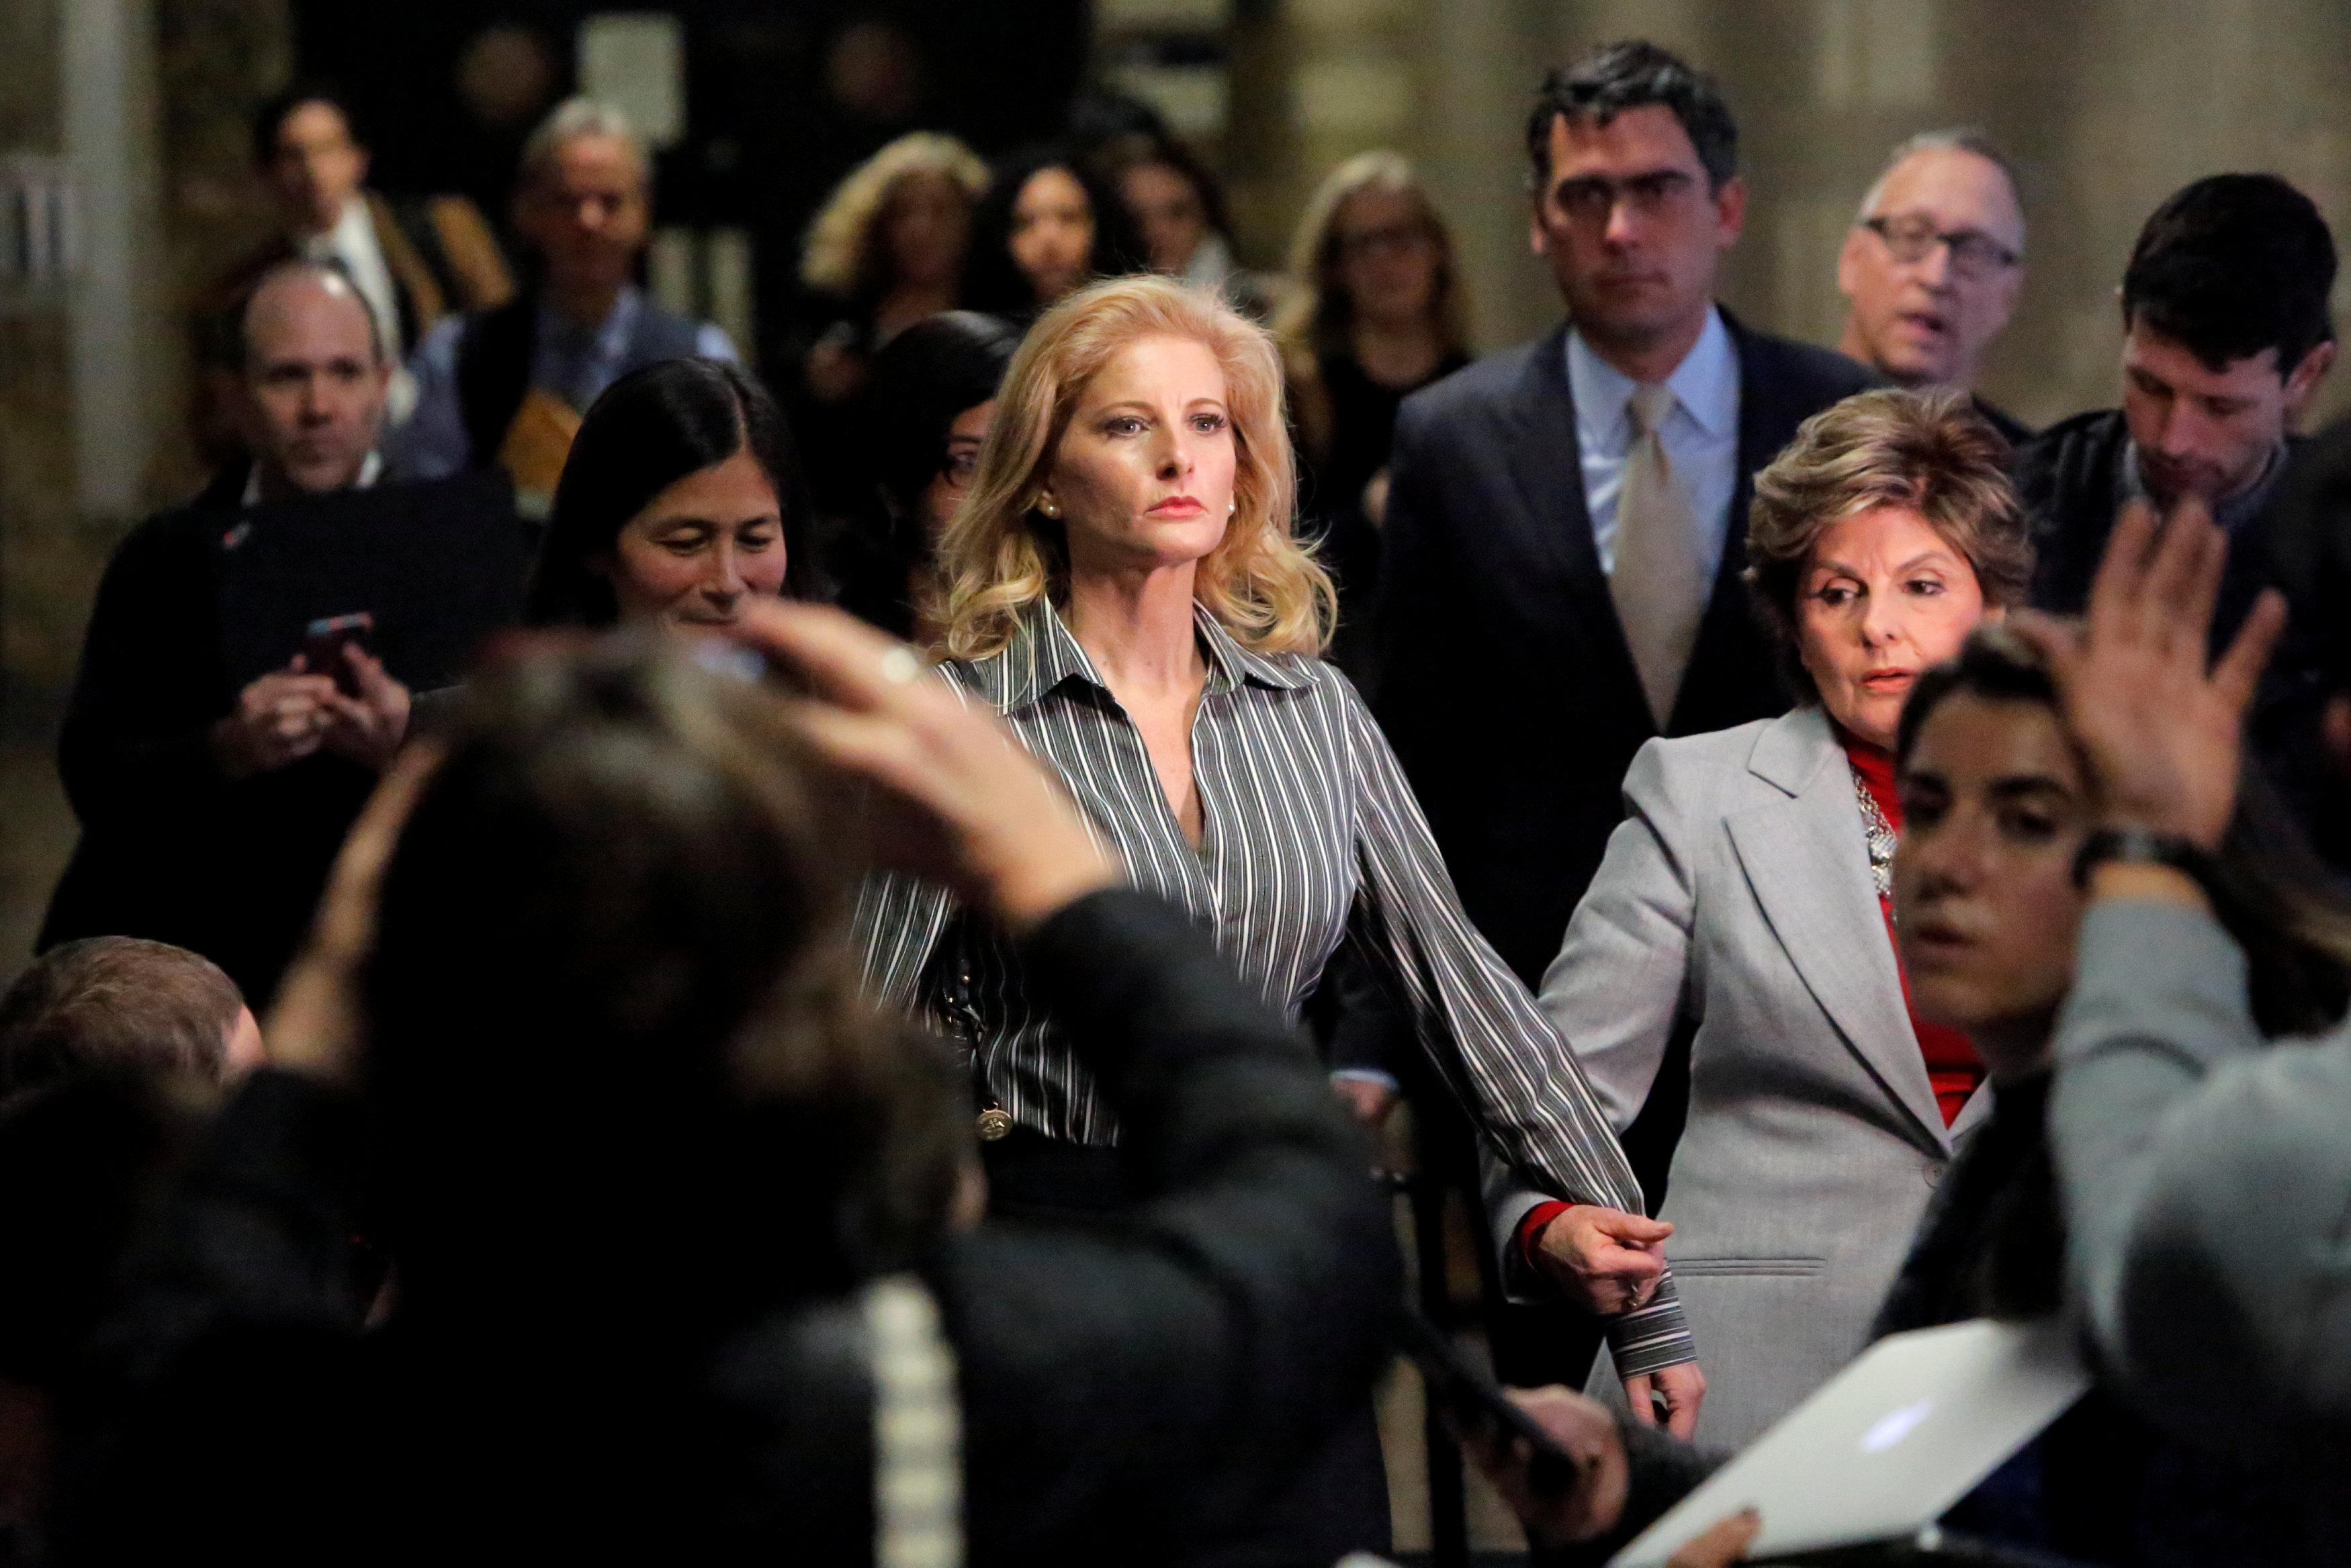 Summer Zervos, a former contestant on The Apprentice, leaves New York State Supreme Court with attorney Gloria Allred (R) after a hearing on the defamation case against U.S. President Donald Trump in Manhattan, New York City, U.S., December 5, 2017.  Andrew Kelly